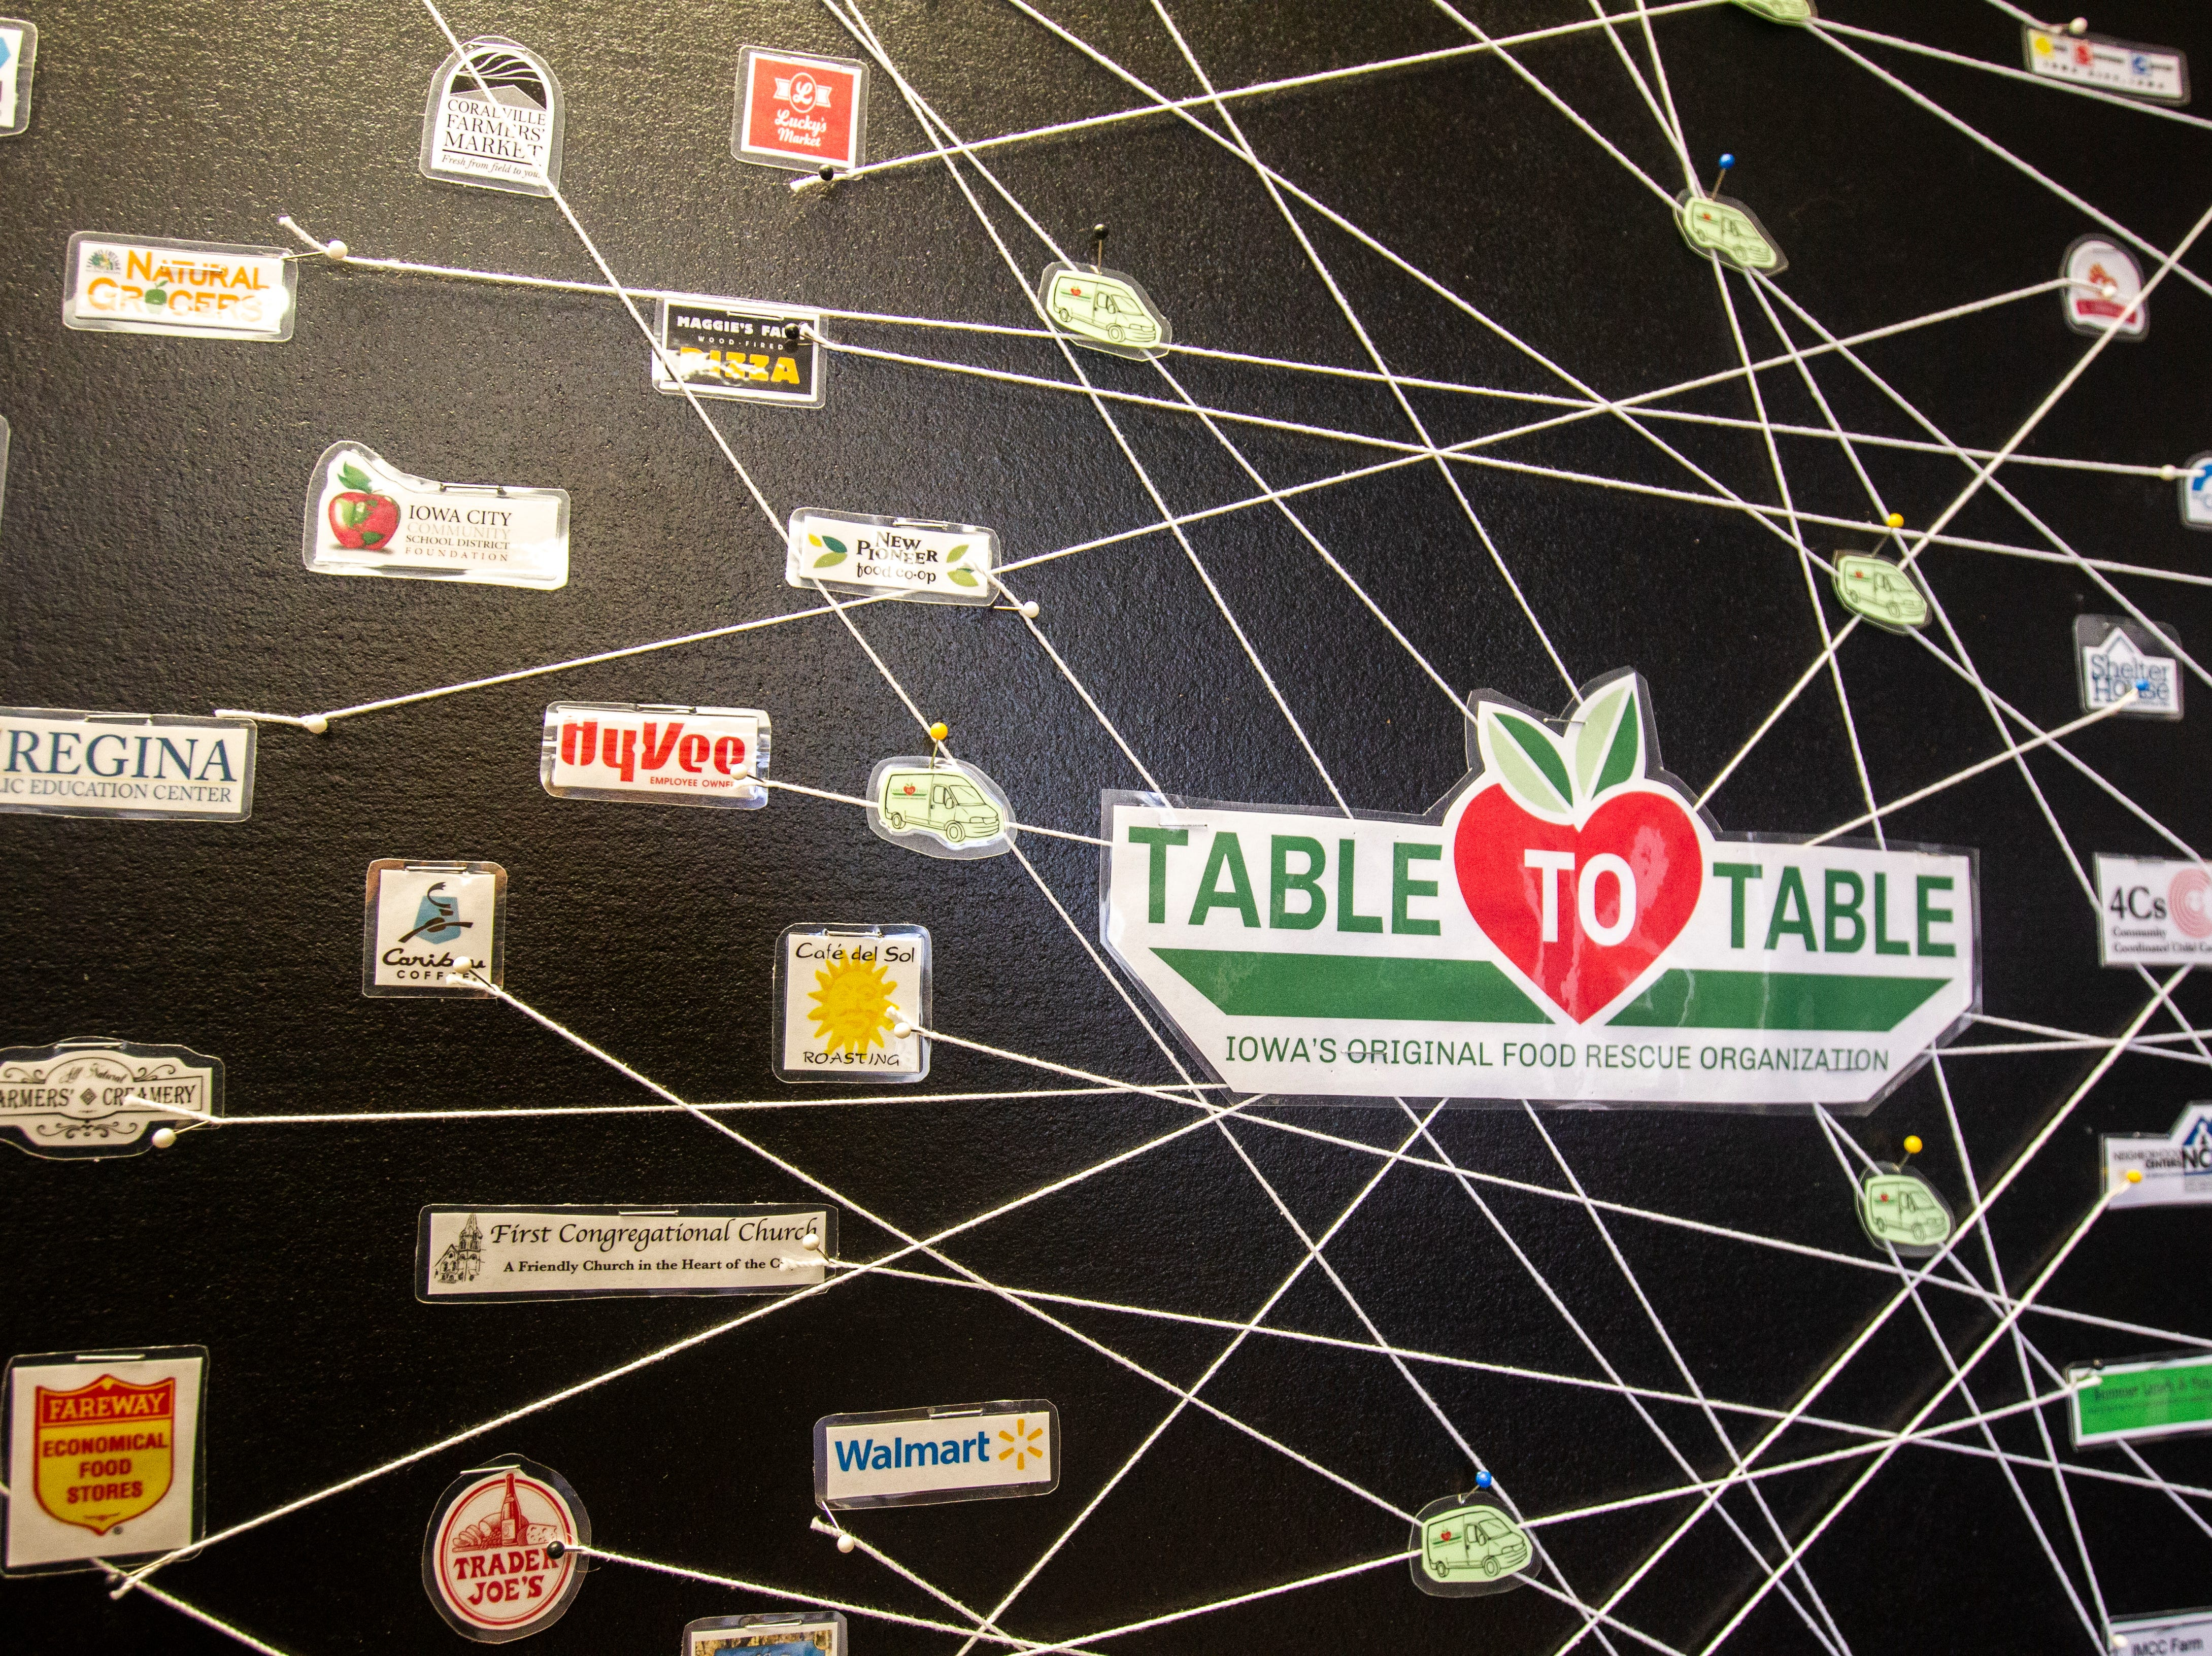 A board shows logos of community partners connected with food recipients pieces of string on Thursday, Nov. 15, 2018, at the Table to Table offices in Iowa City. They currently pick up food from 76 partners and deliver to 50 groups.